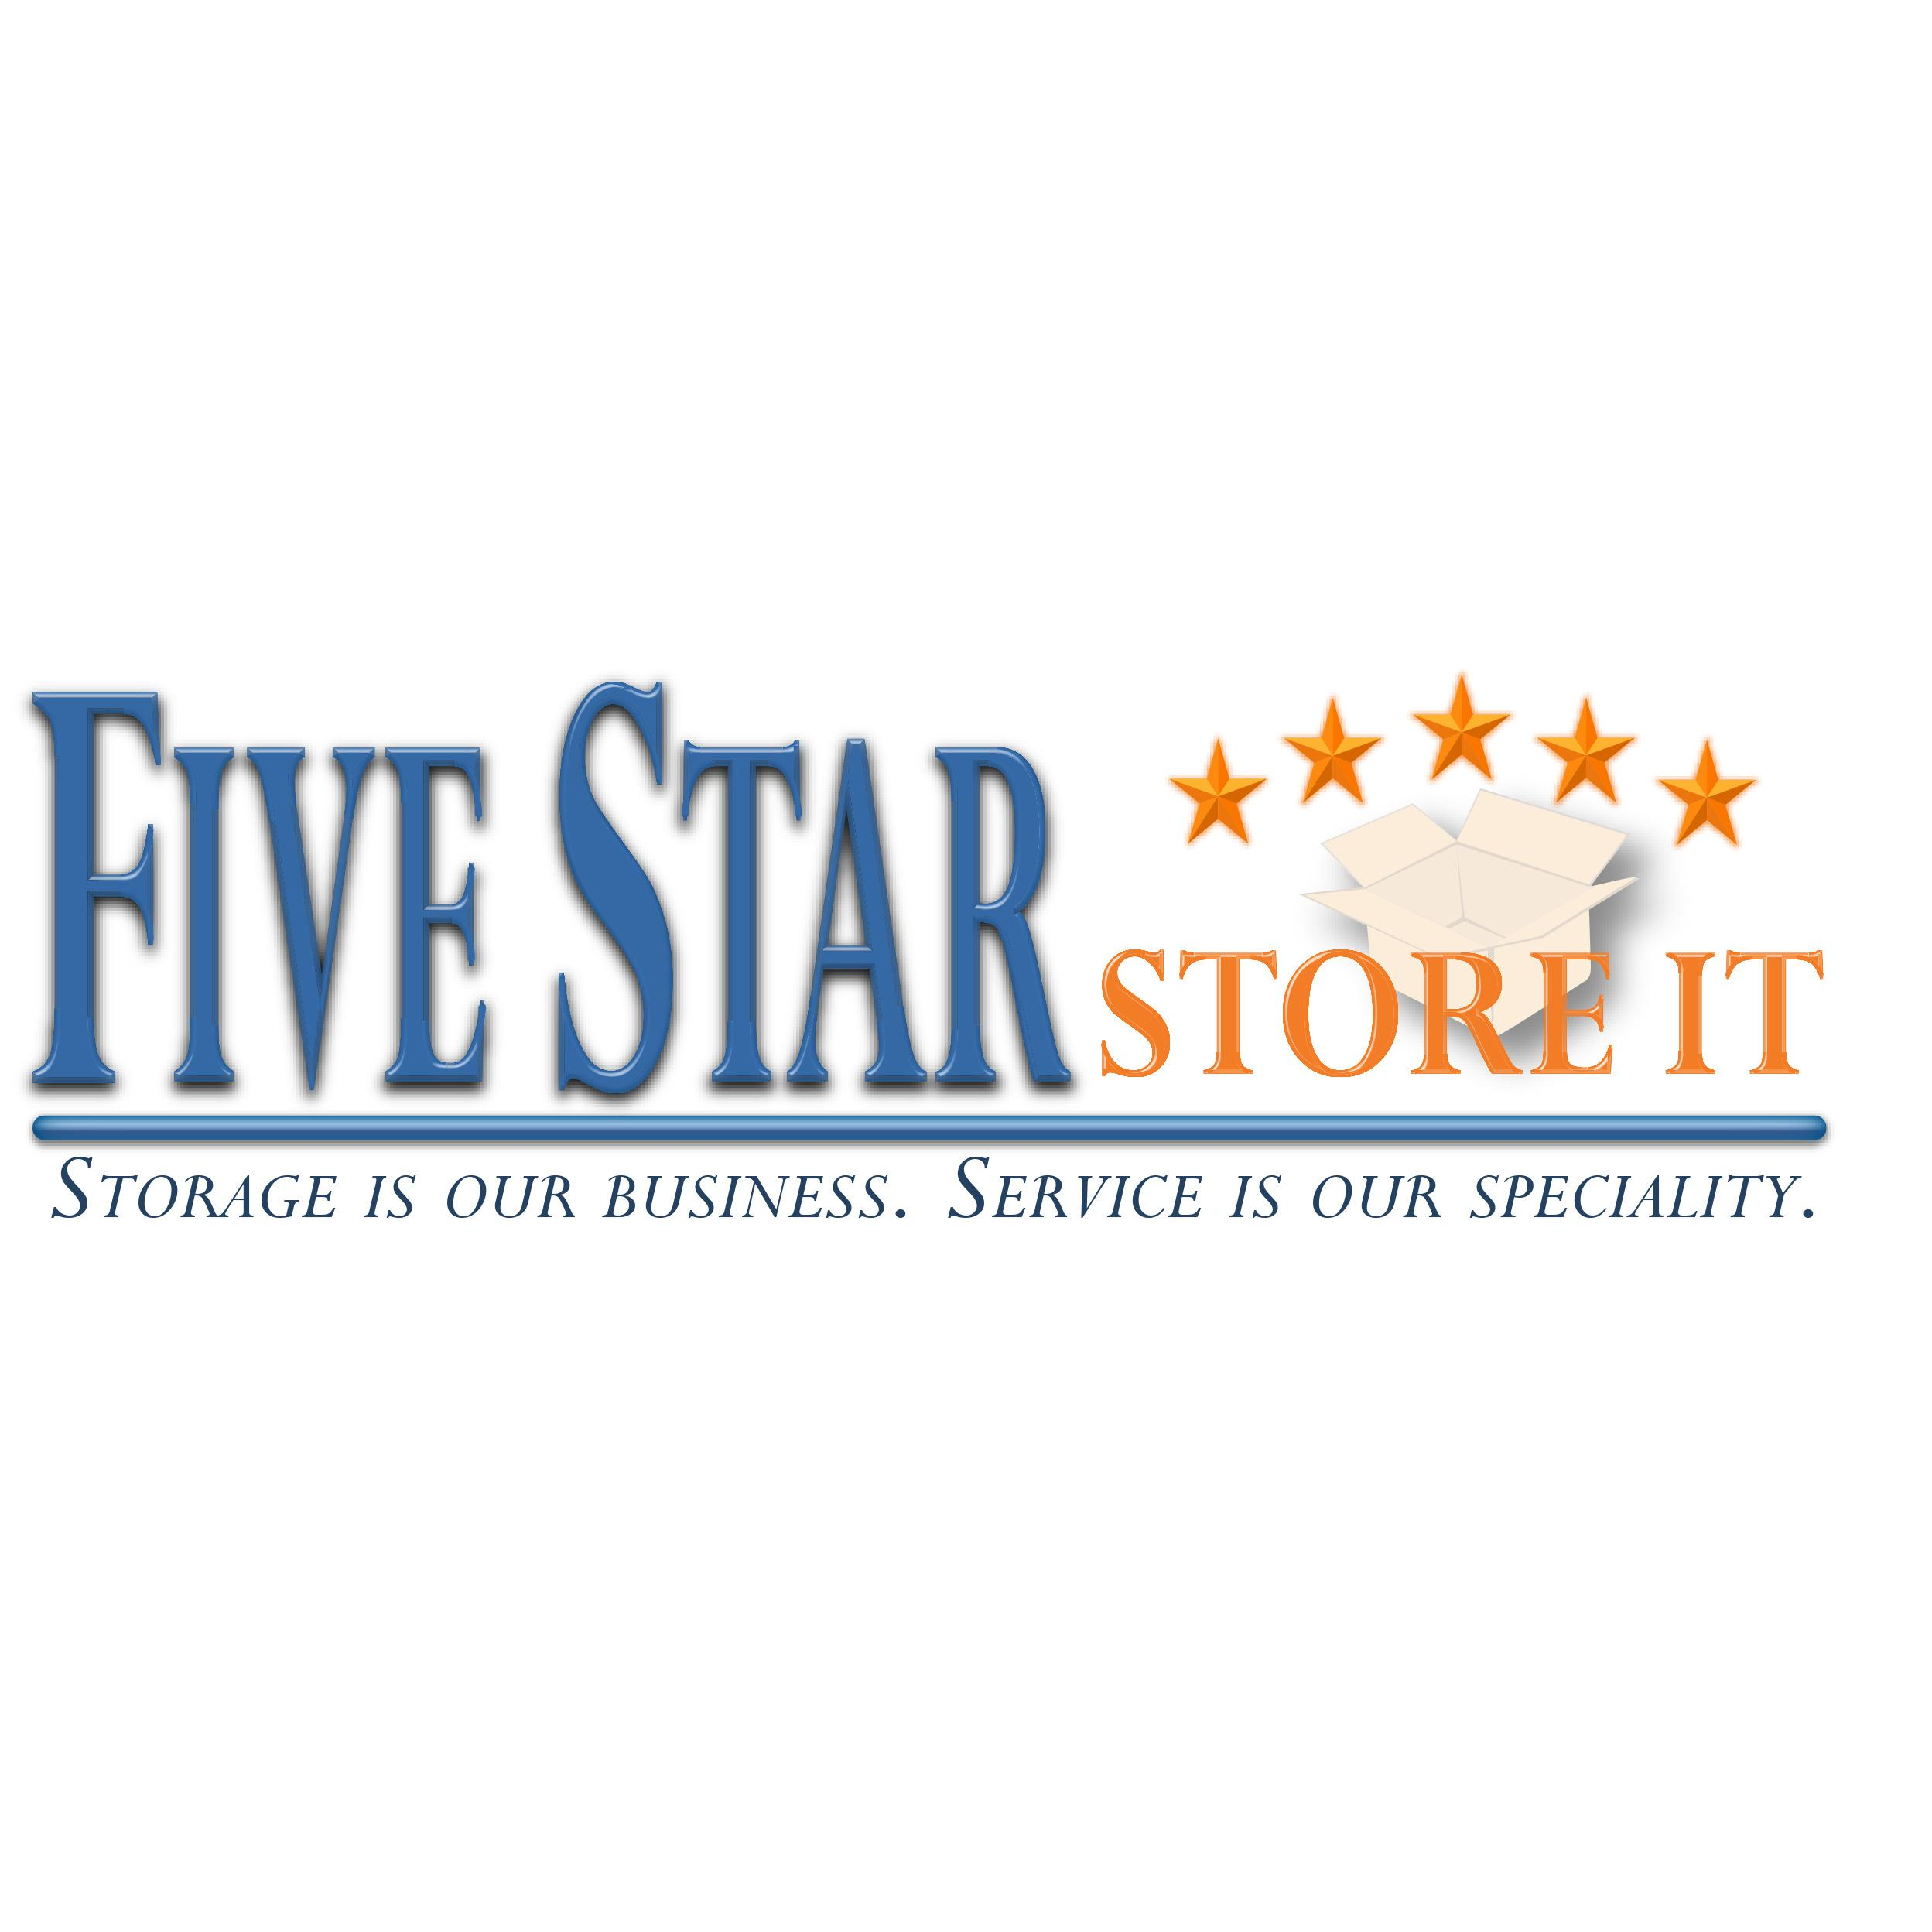 Five Star Store It - Mason